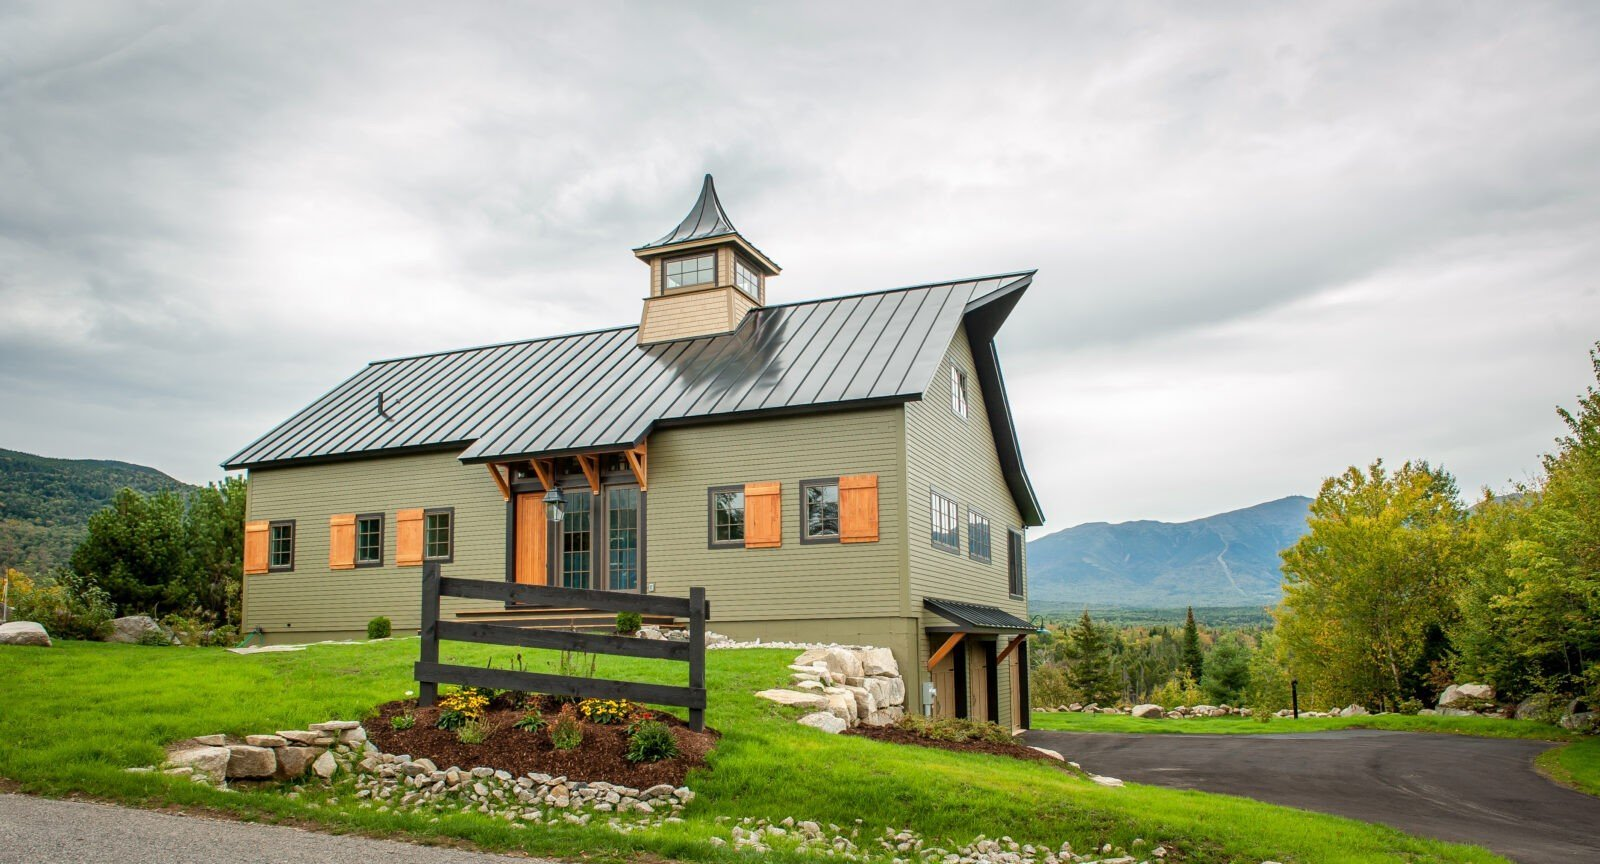 Top notch barn home plans from the ybh design team for Barn style house designs